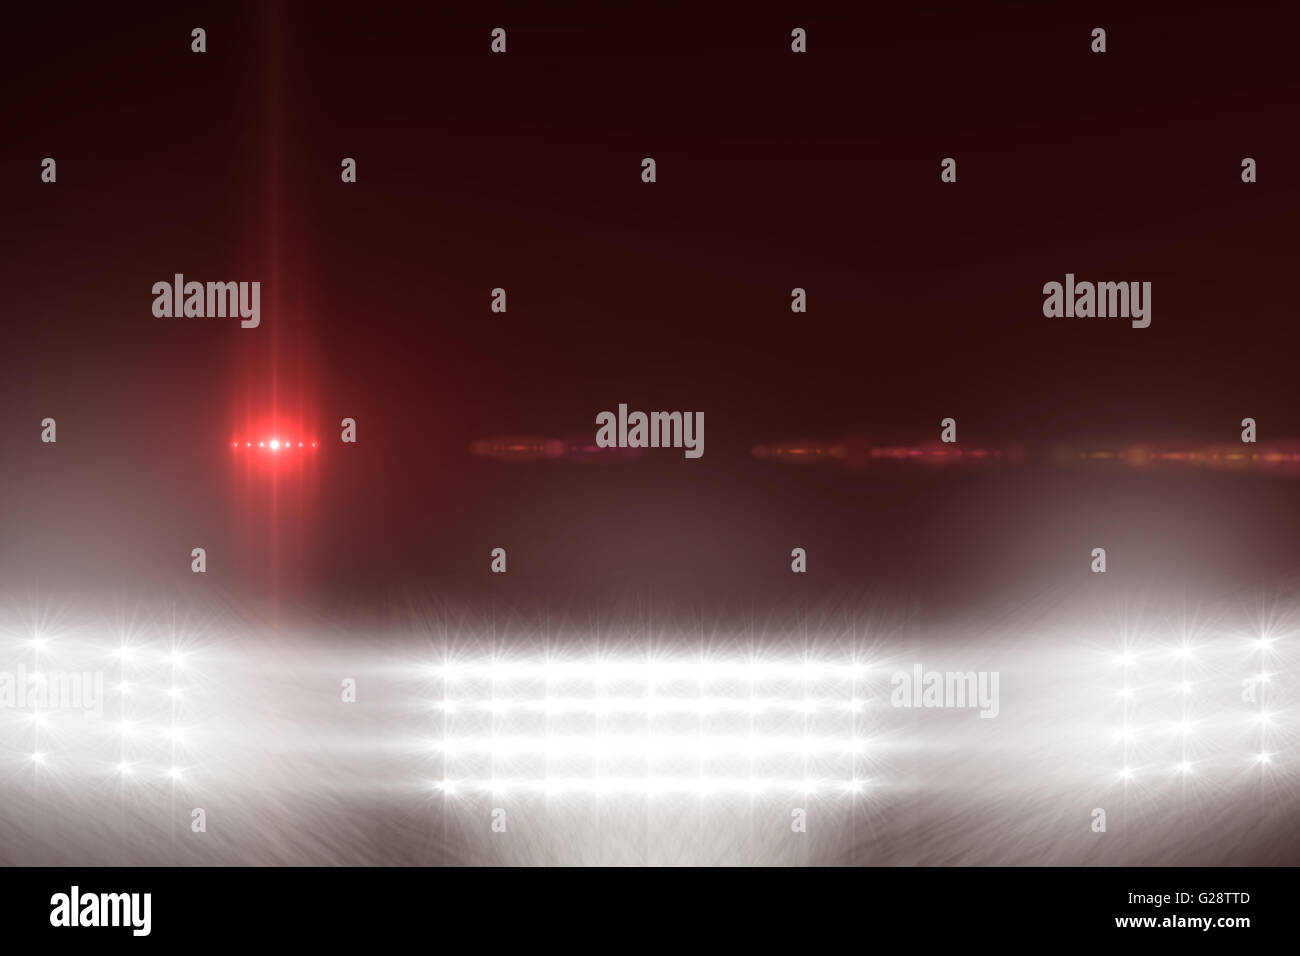 Digitally generated image of Spotlights - Stock Image